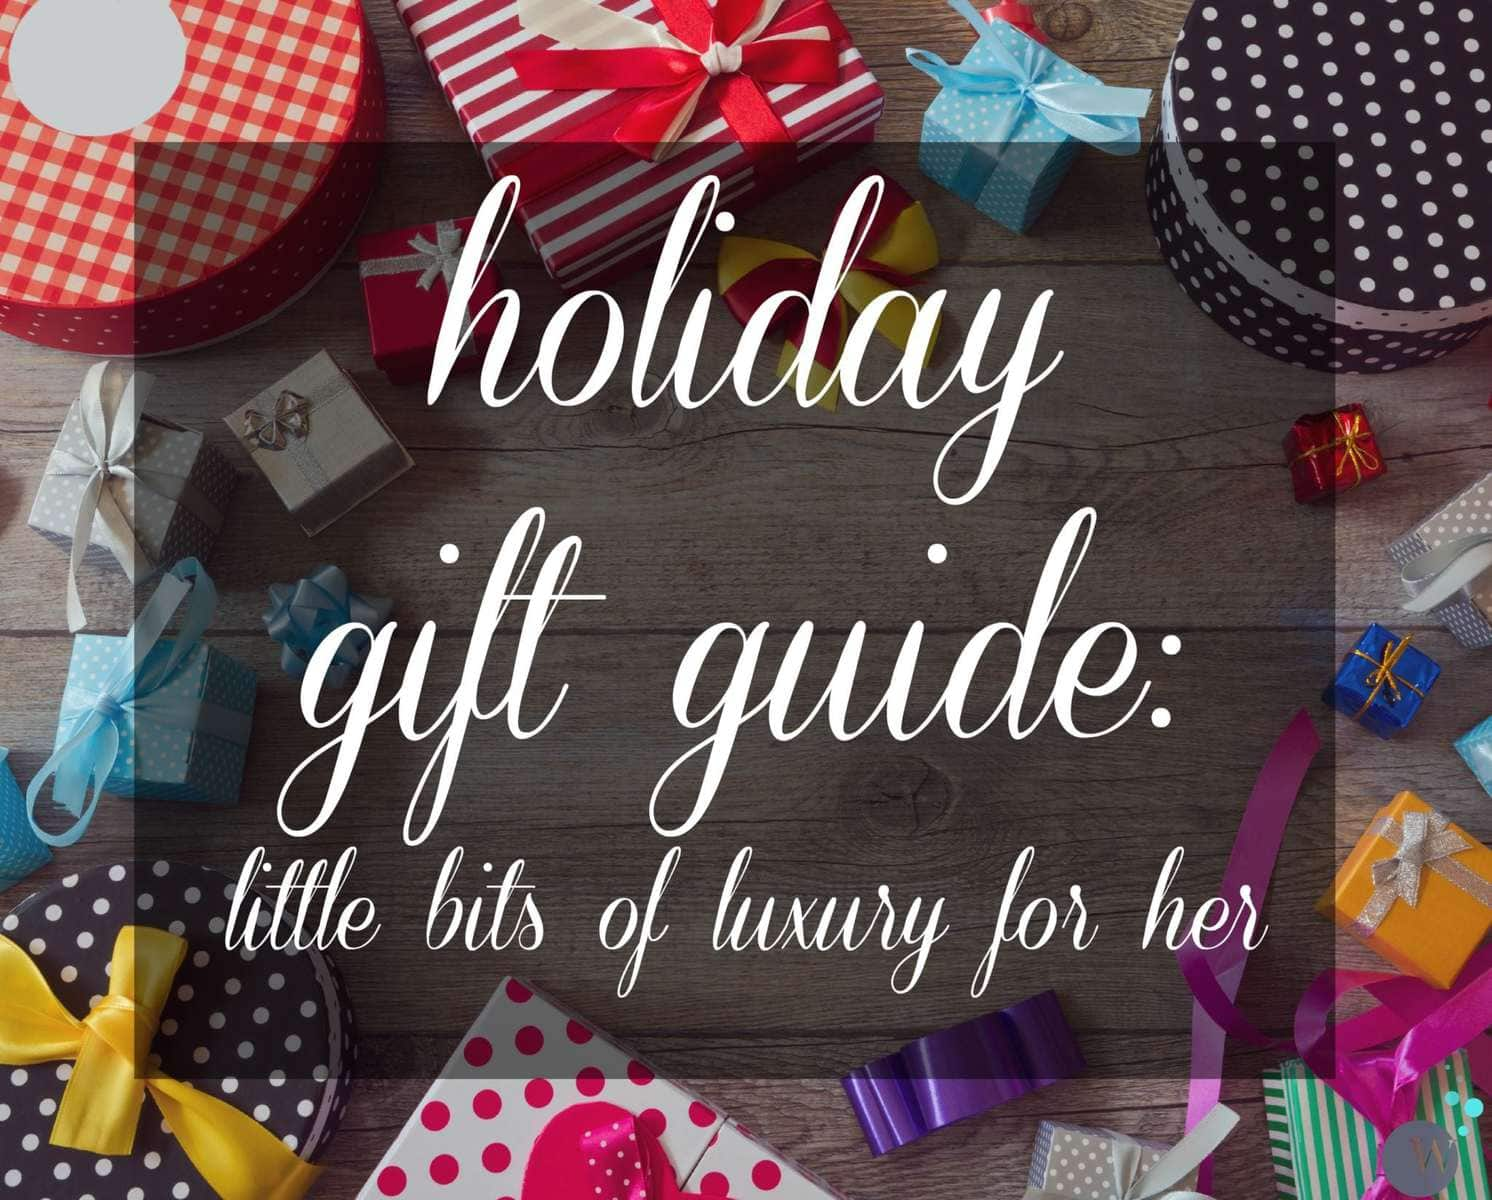 Holiday Gift Guide: Luxury and unique gifts for her that can stand on their own, no need to fill under the tree with these great items!